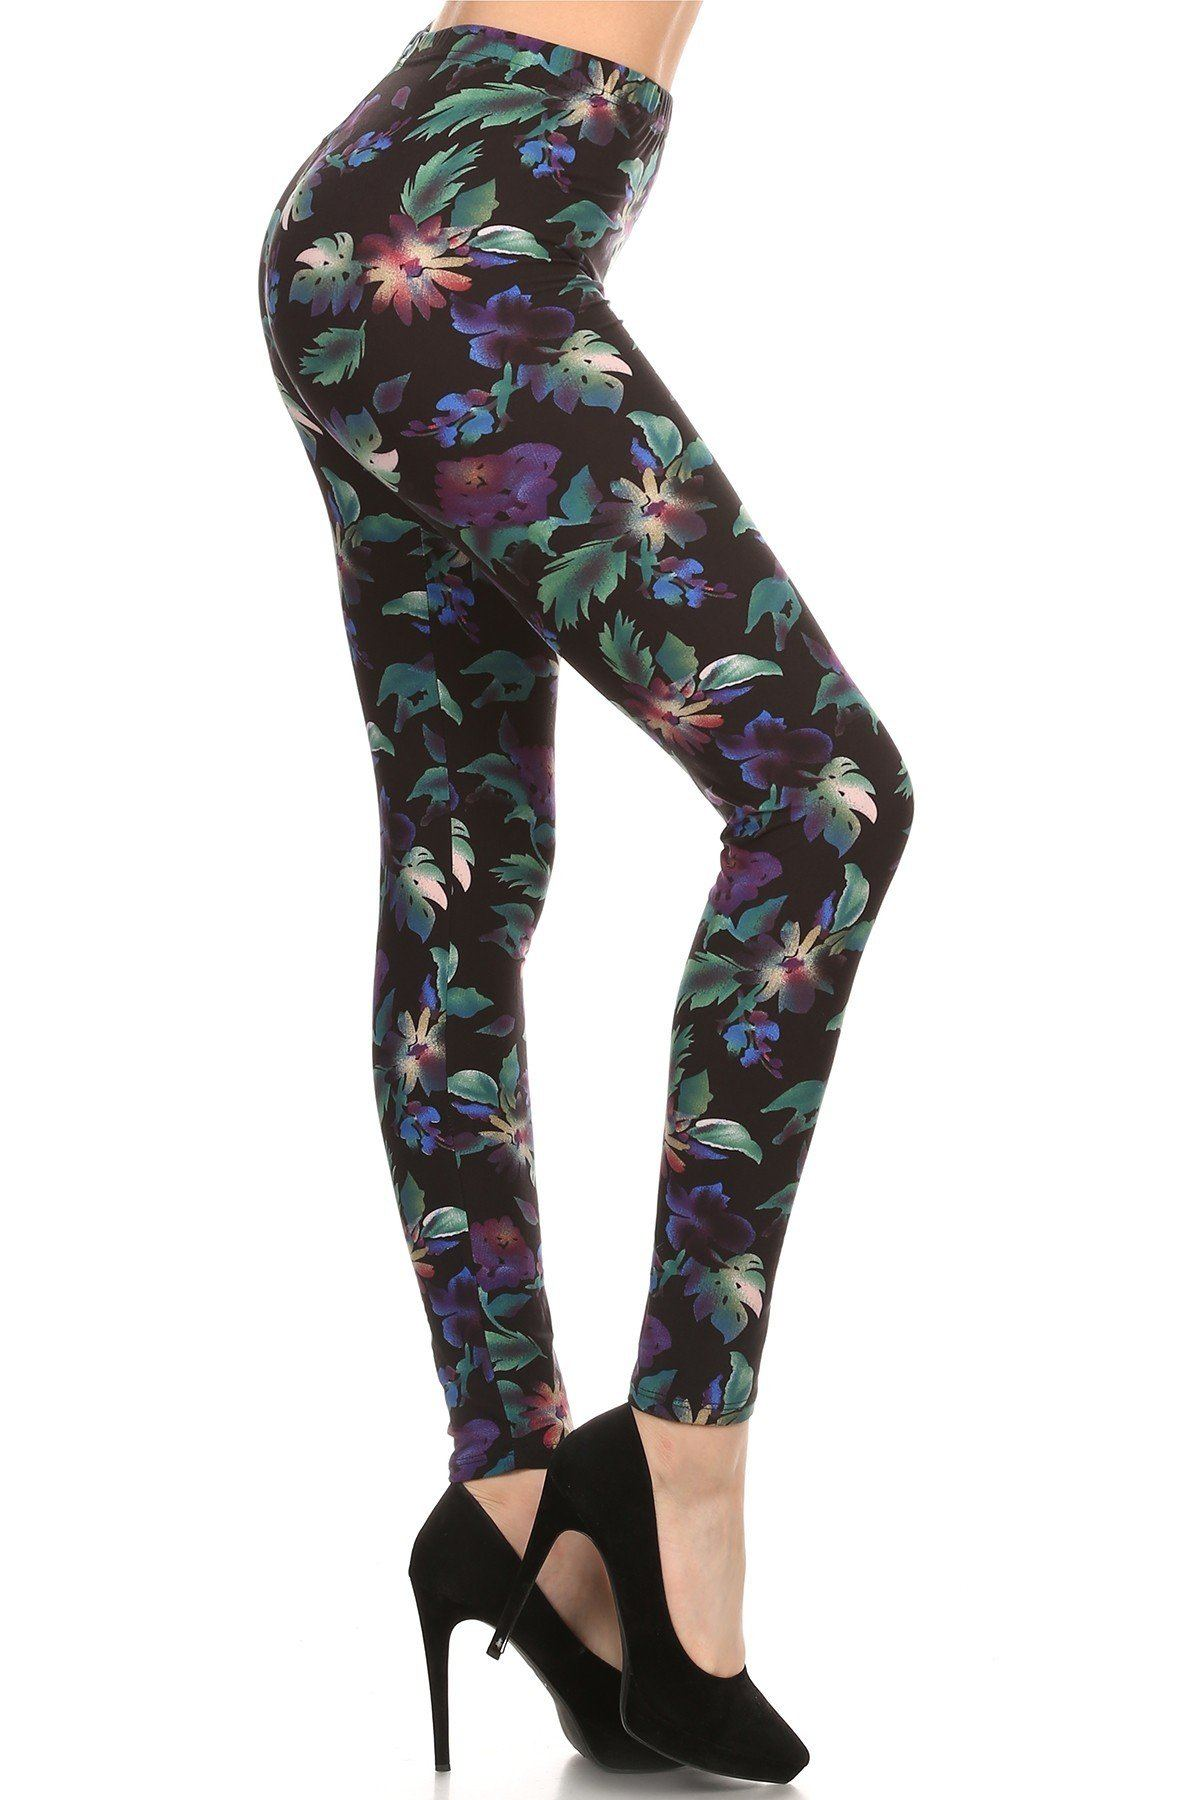 Floral Print, Full Length Leggings In A Slim Fitting Style With A Banded High Waist